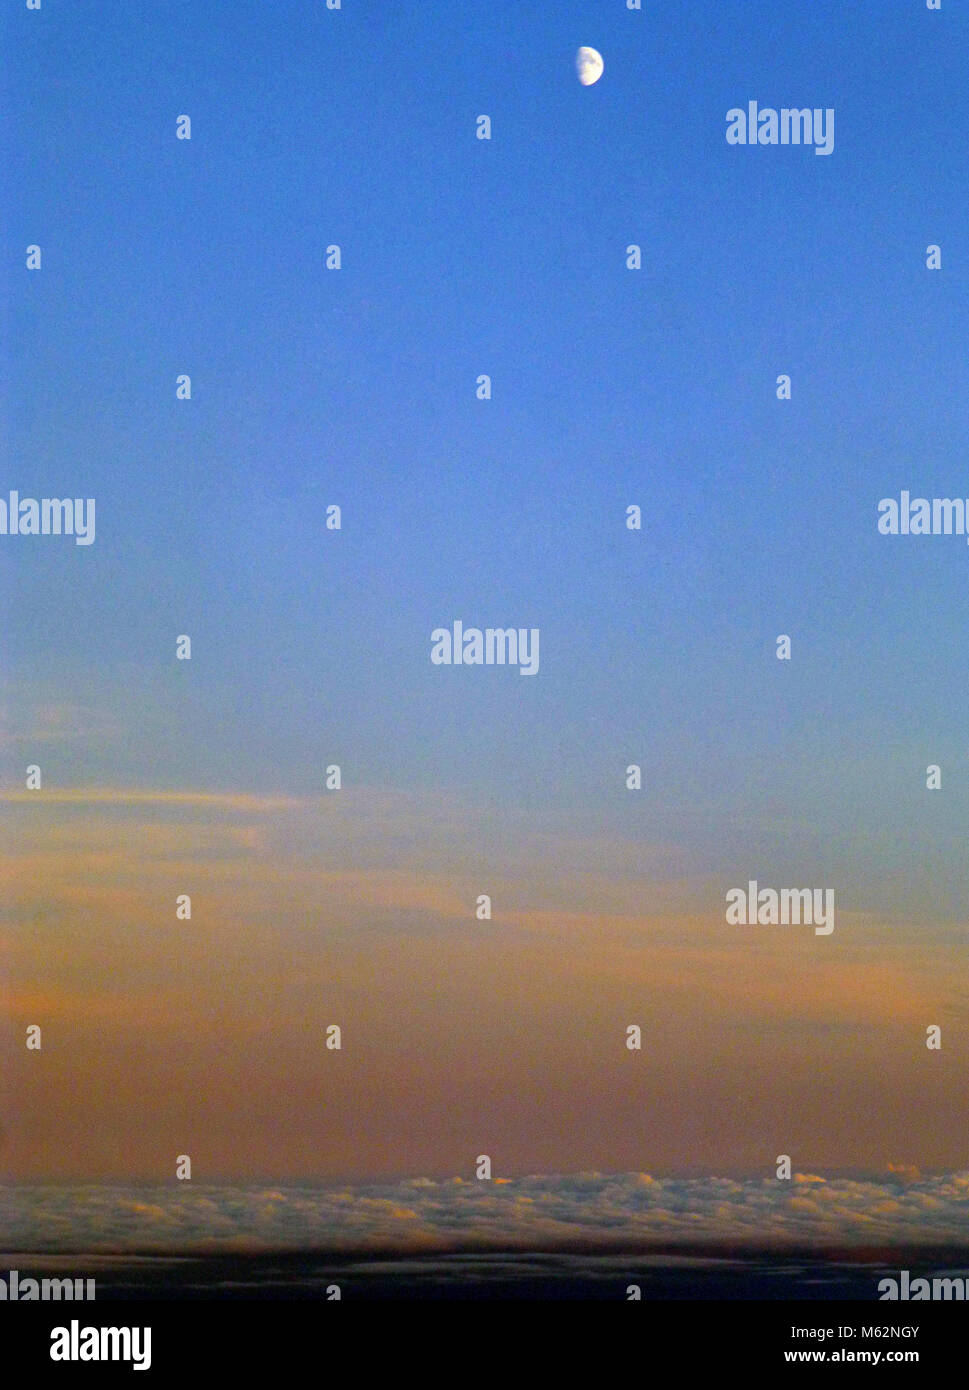 Aerial view of sunset sky with half moon - Stock Image